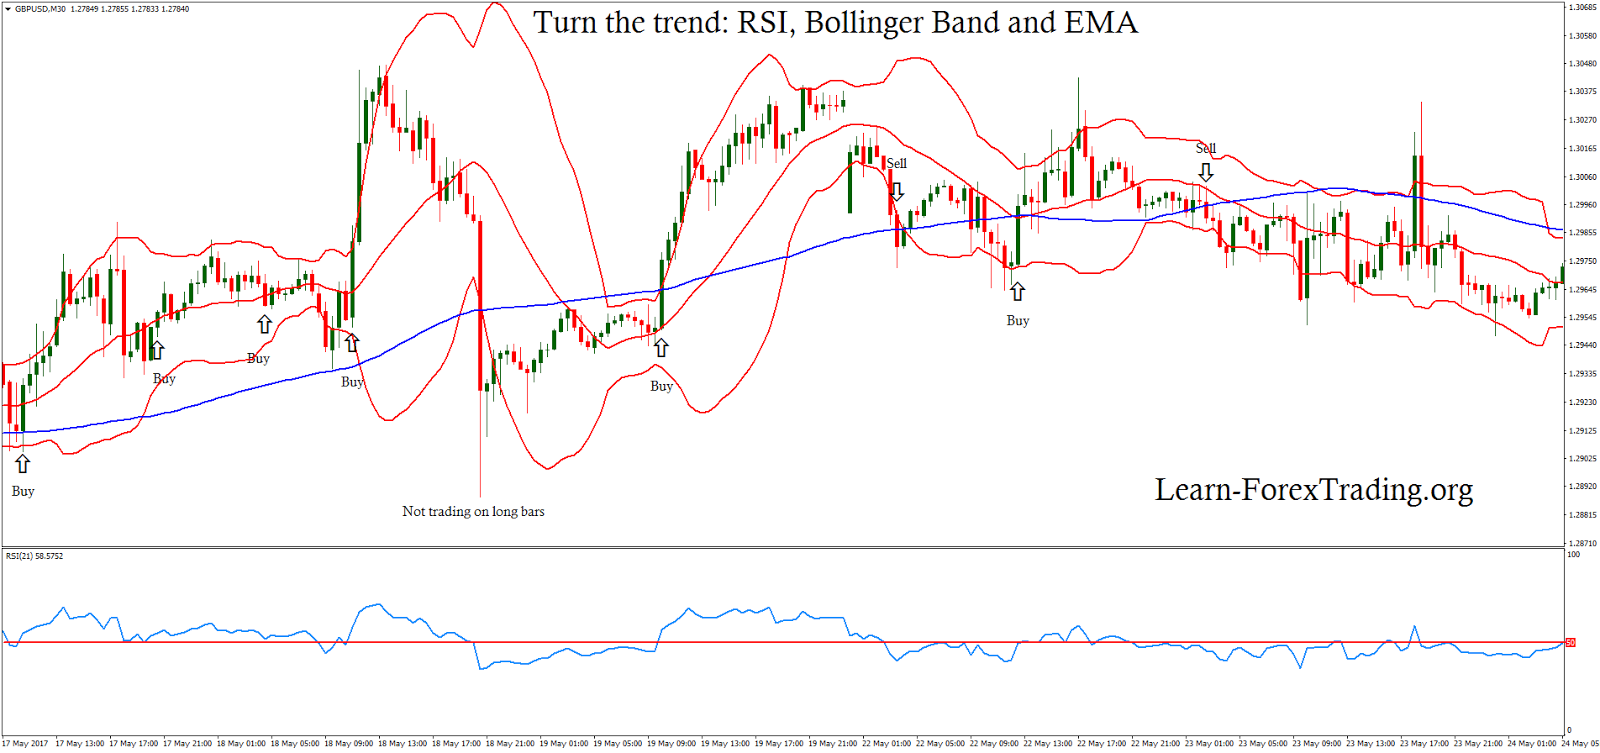 Bollinger bands macd and rsi